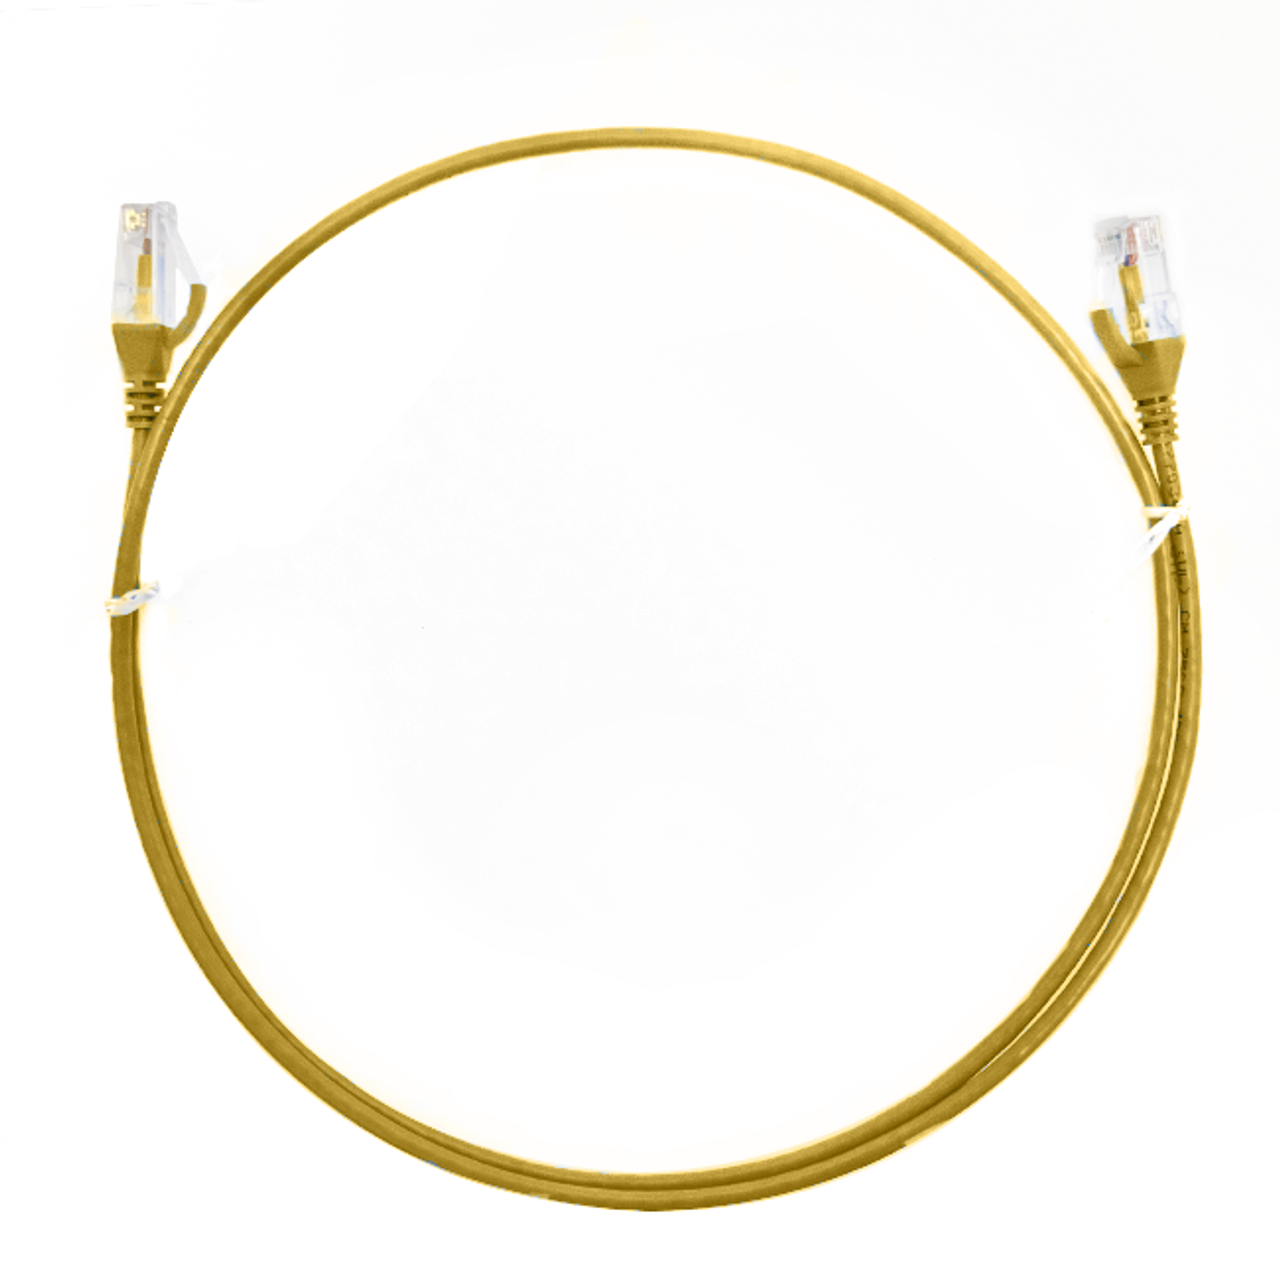 Image for 5m Cat 6 Ultra Thin LSZH Ethernet Network Cables: Yellow CX Computer Superstore